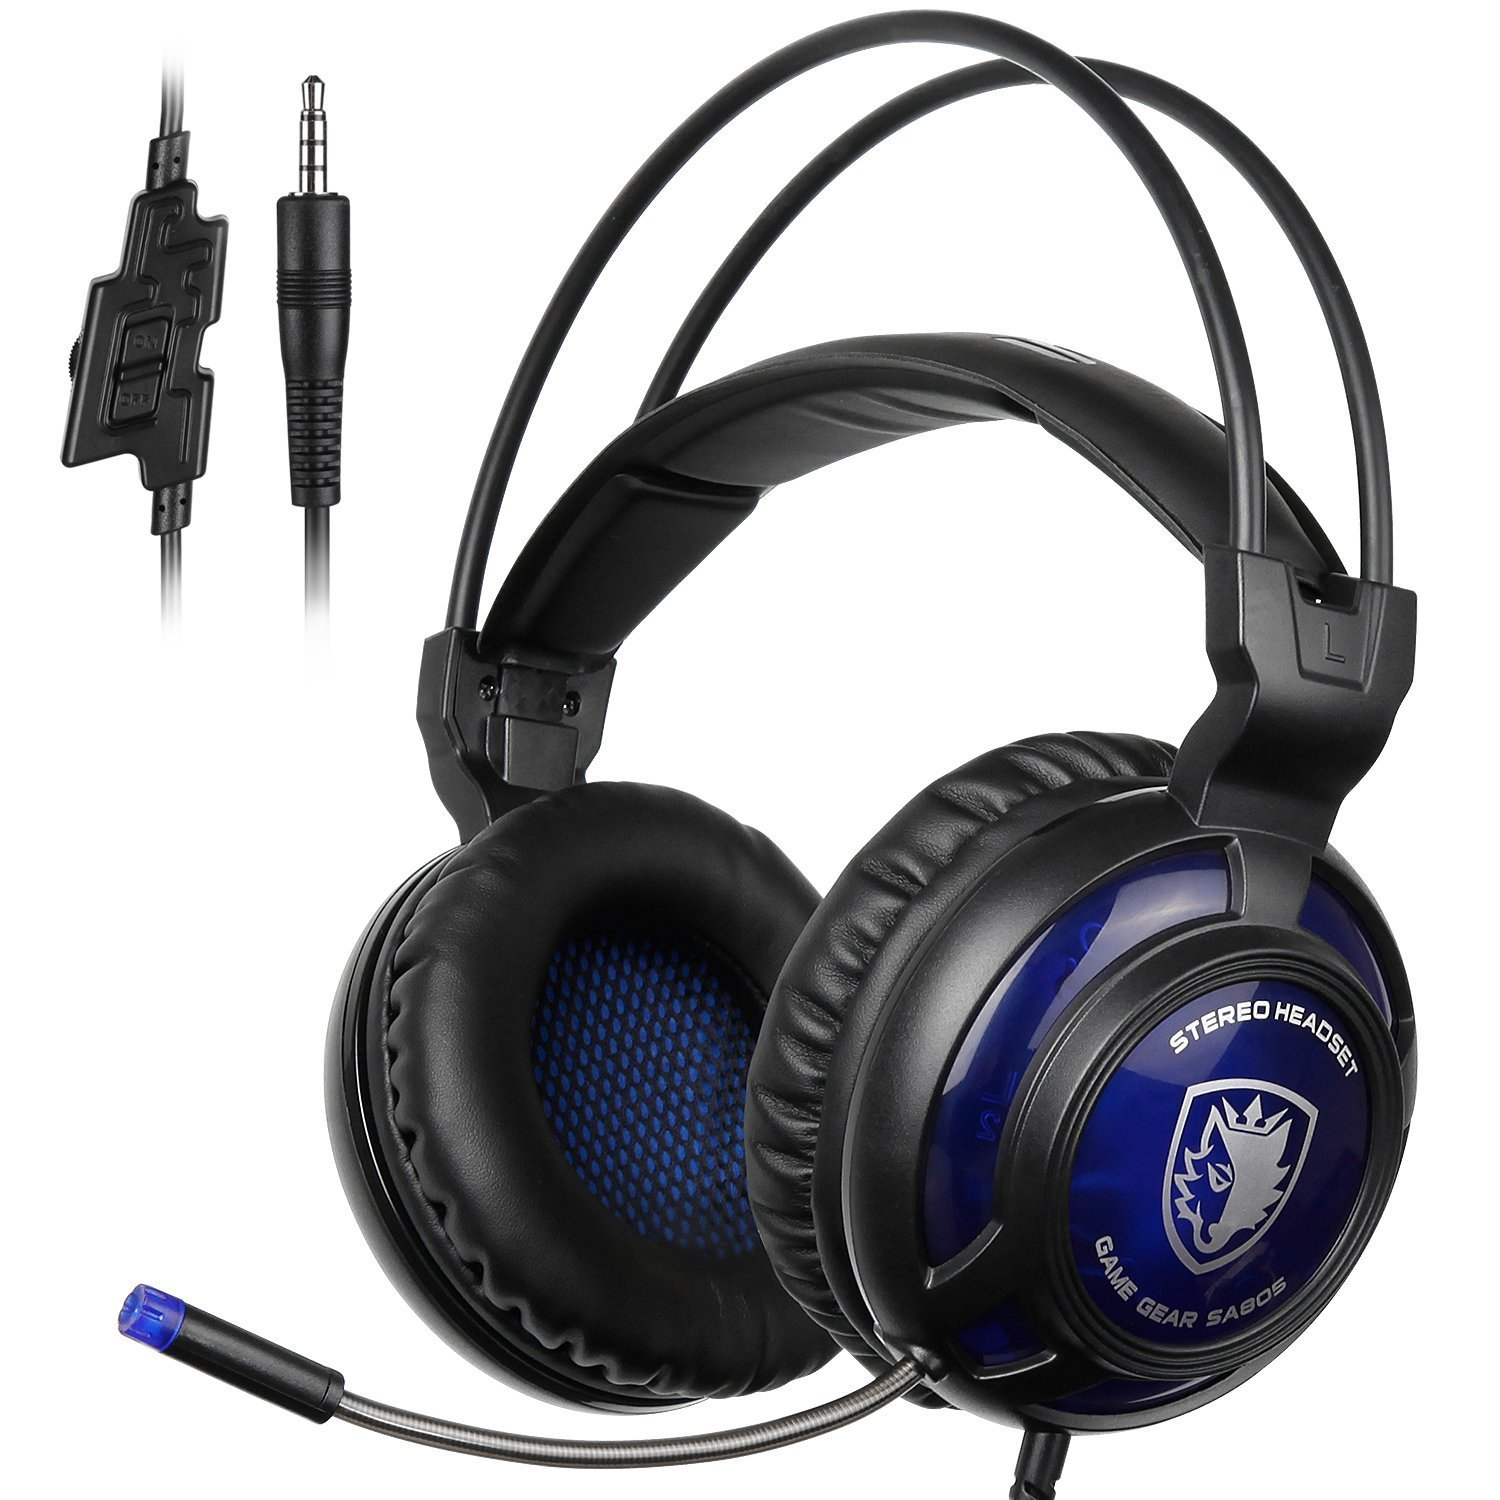 SADES New Arrival SA805 Wired Over-ear Stereo Gaming Headset with Microphone Controller Noise-reduction for PS4/New Xbox One/PC Computers/Mac/Phones/Tablet (Black Blue)